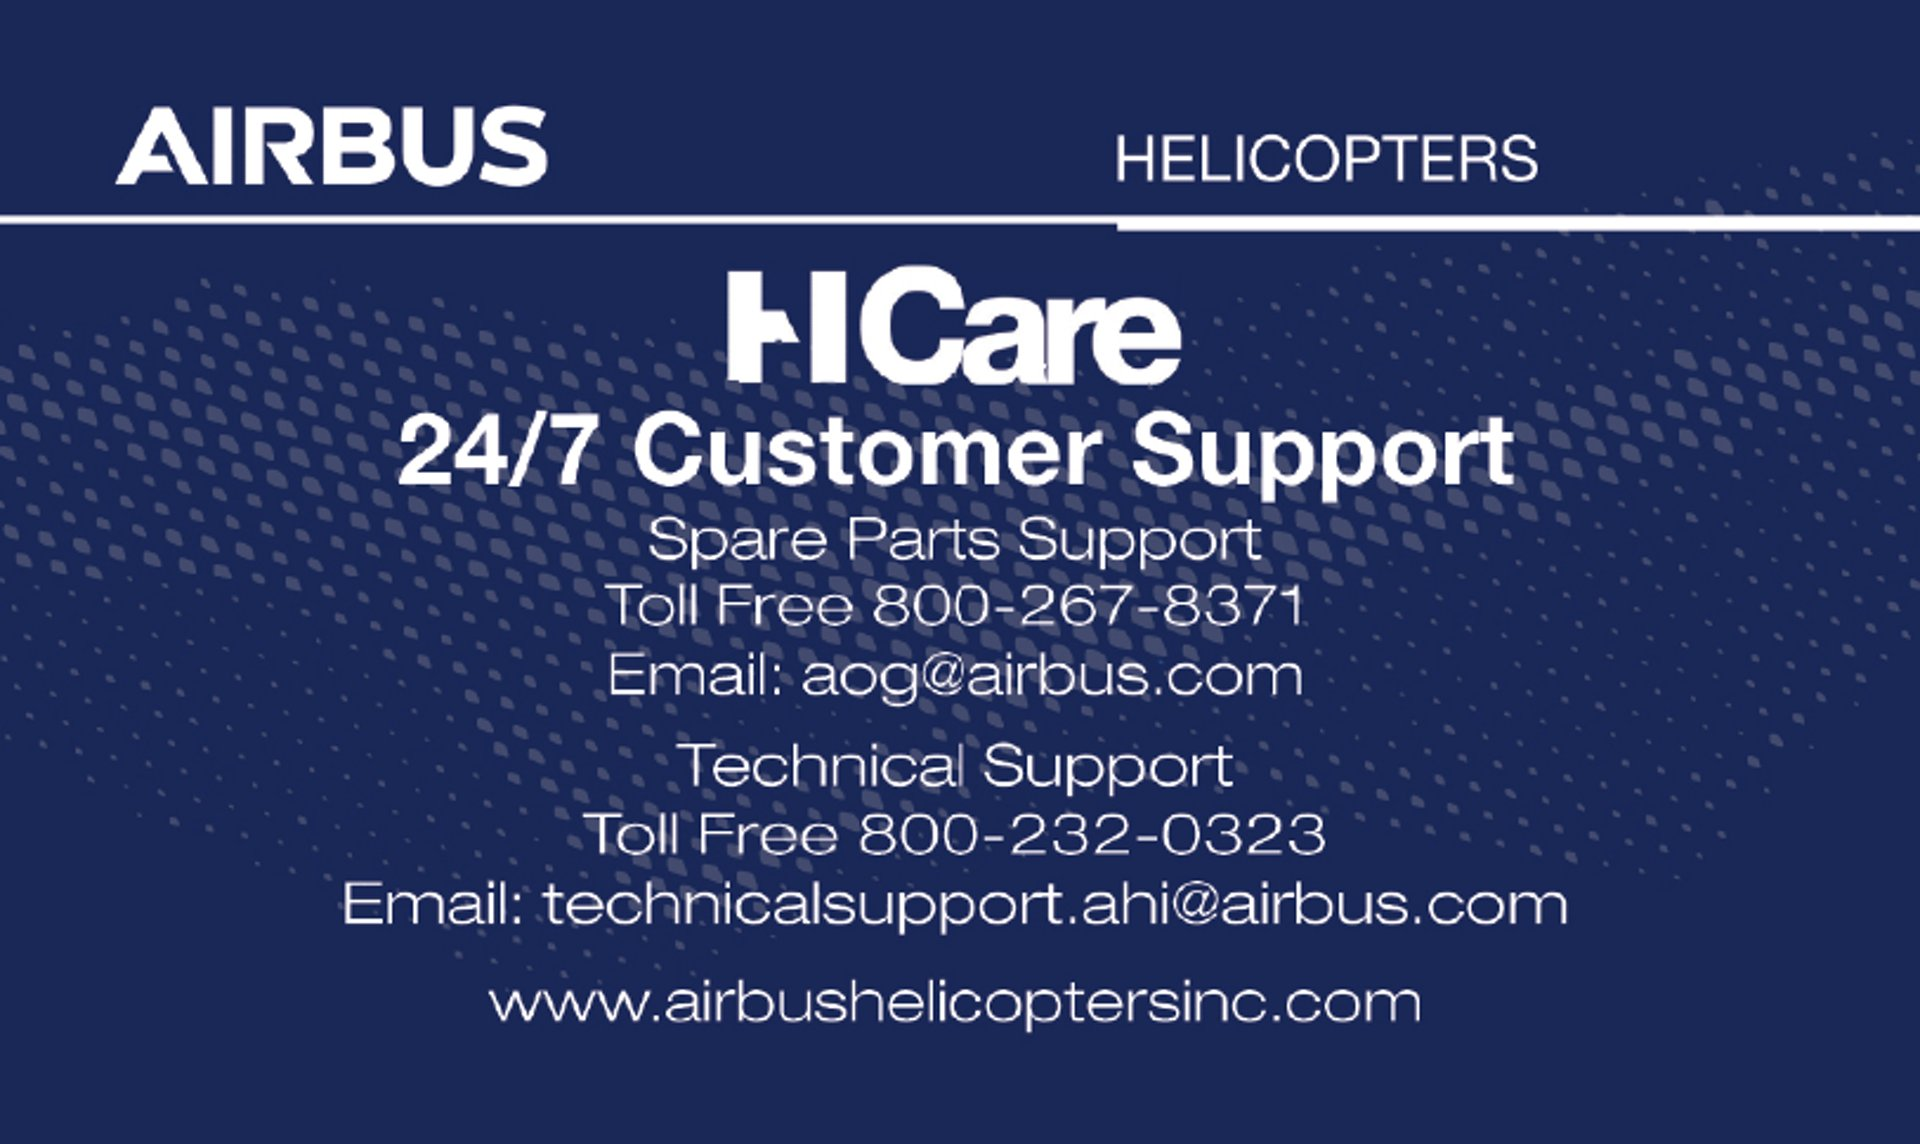 Customer Support Card